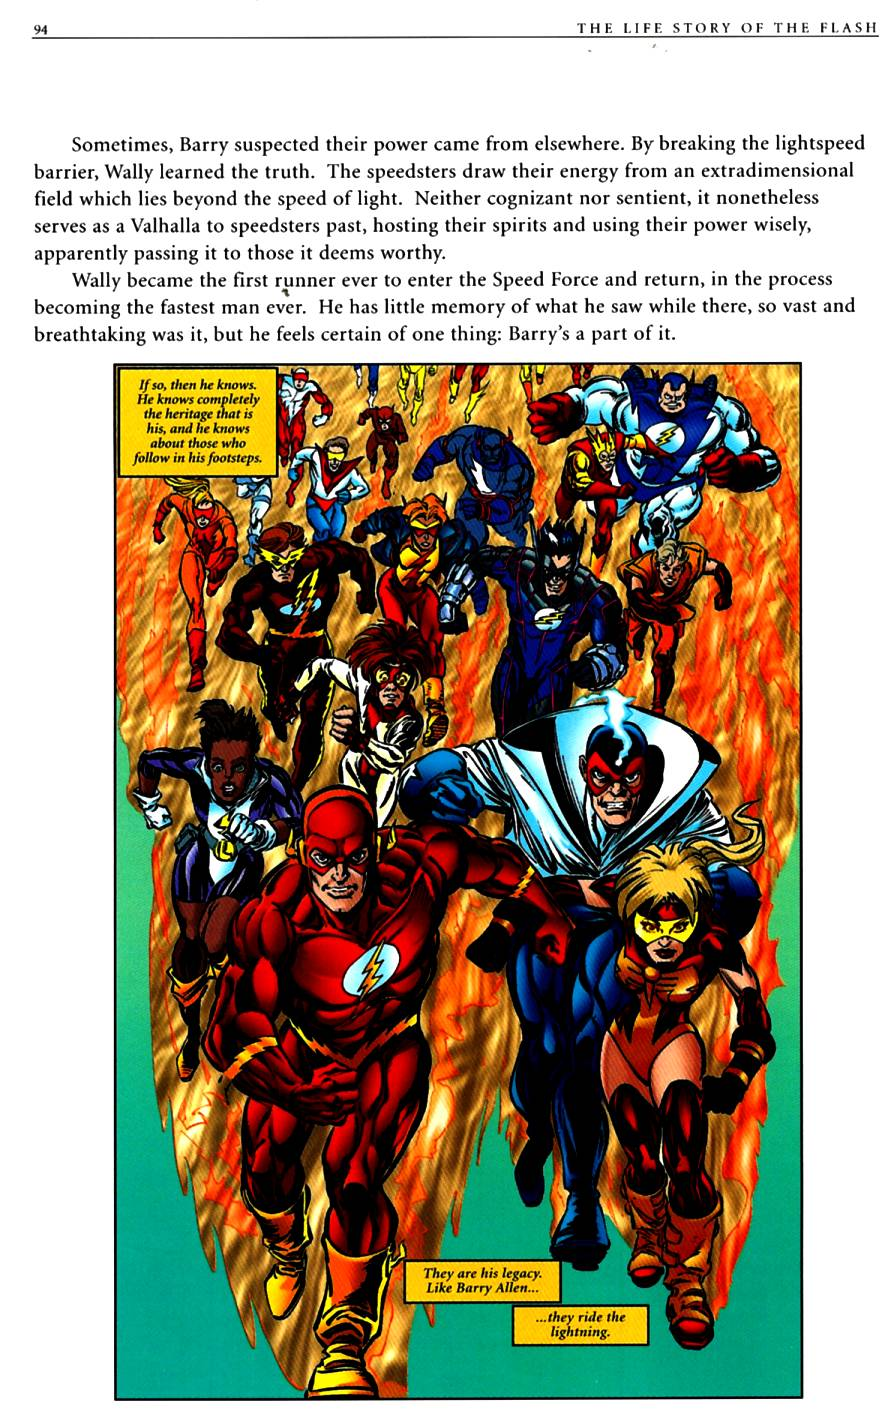 Read online The Life Story of the Flash comic -  Issue # Full - 96